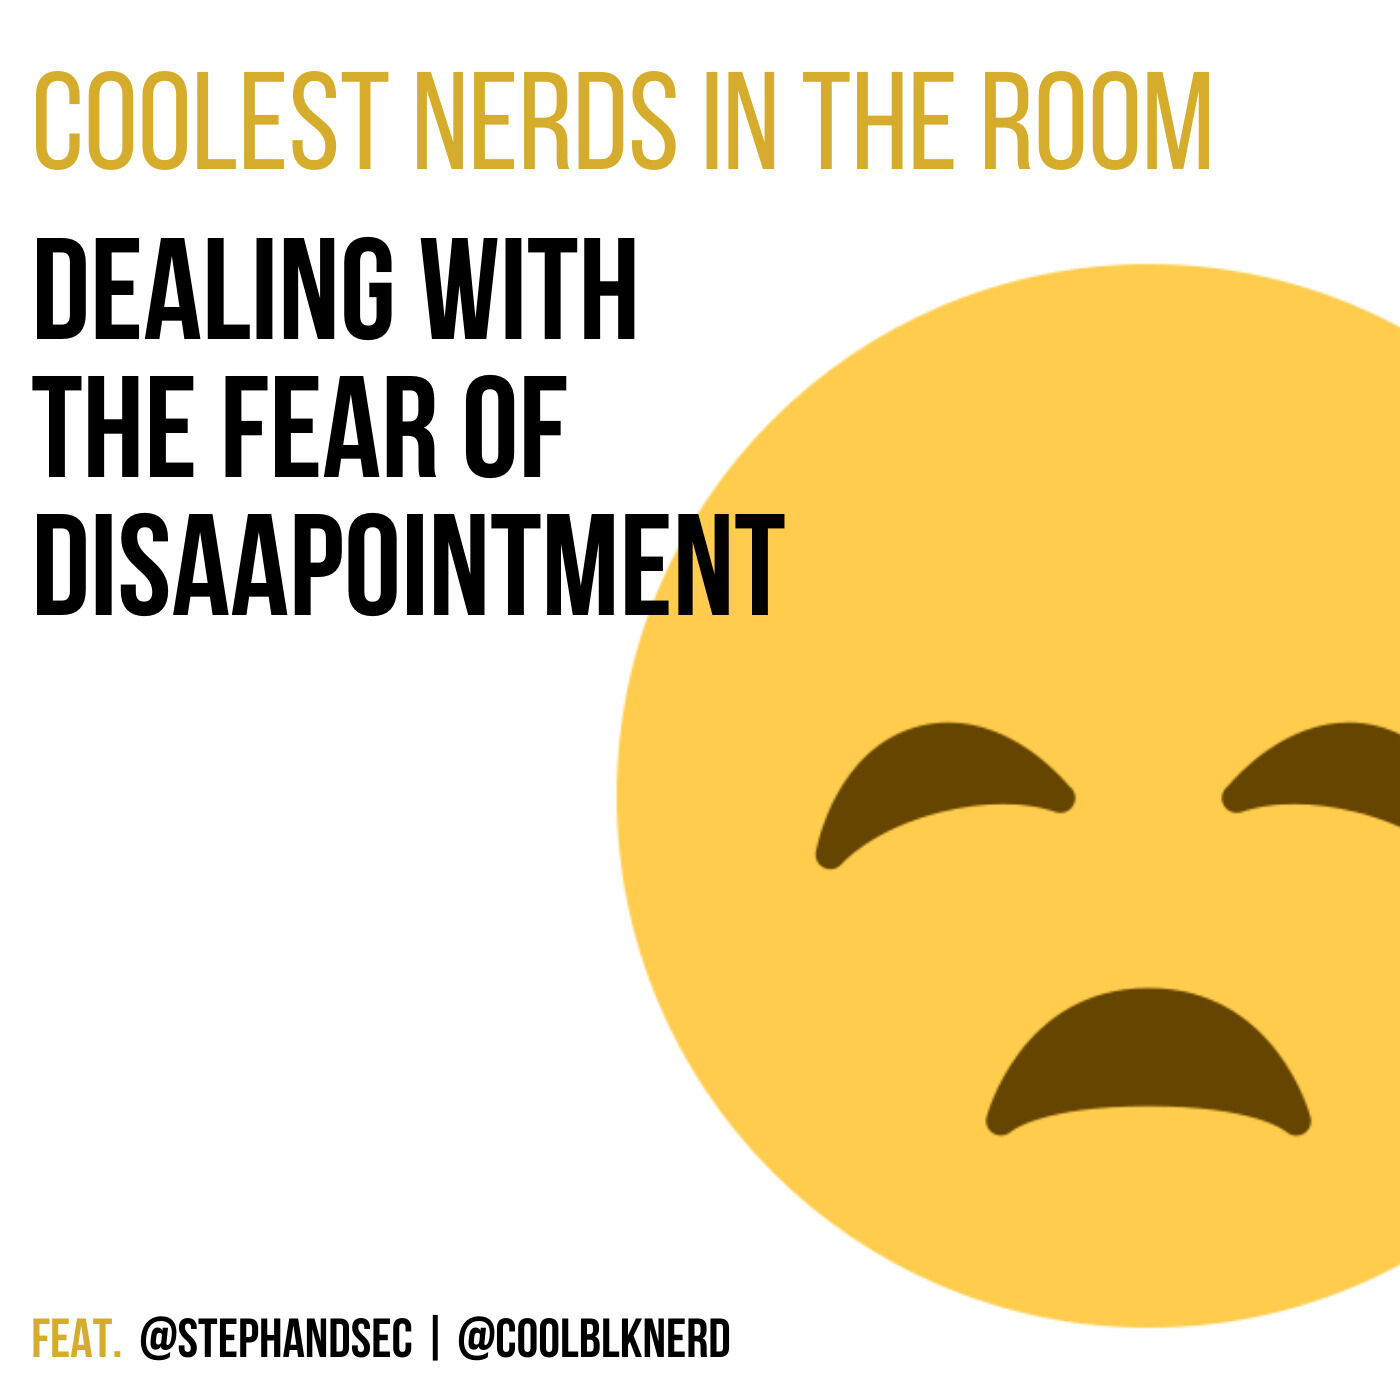 Dealing with the Fear of Disappointing Others